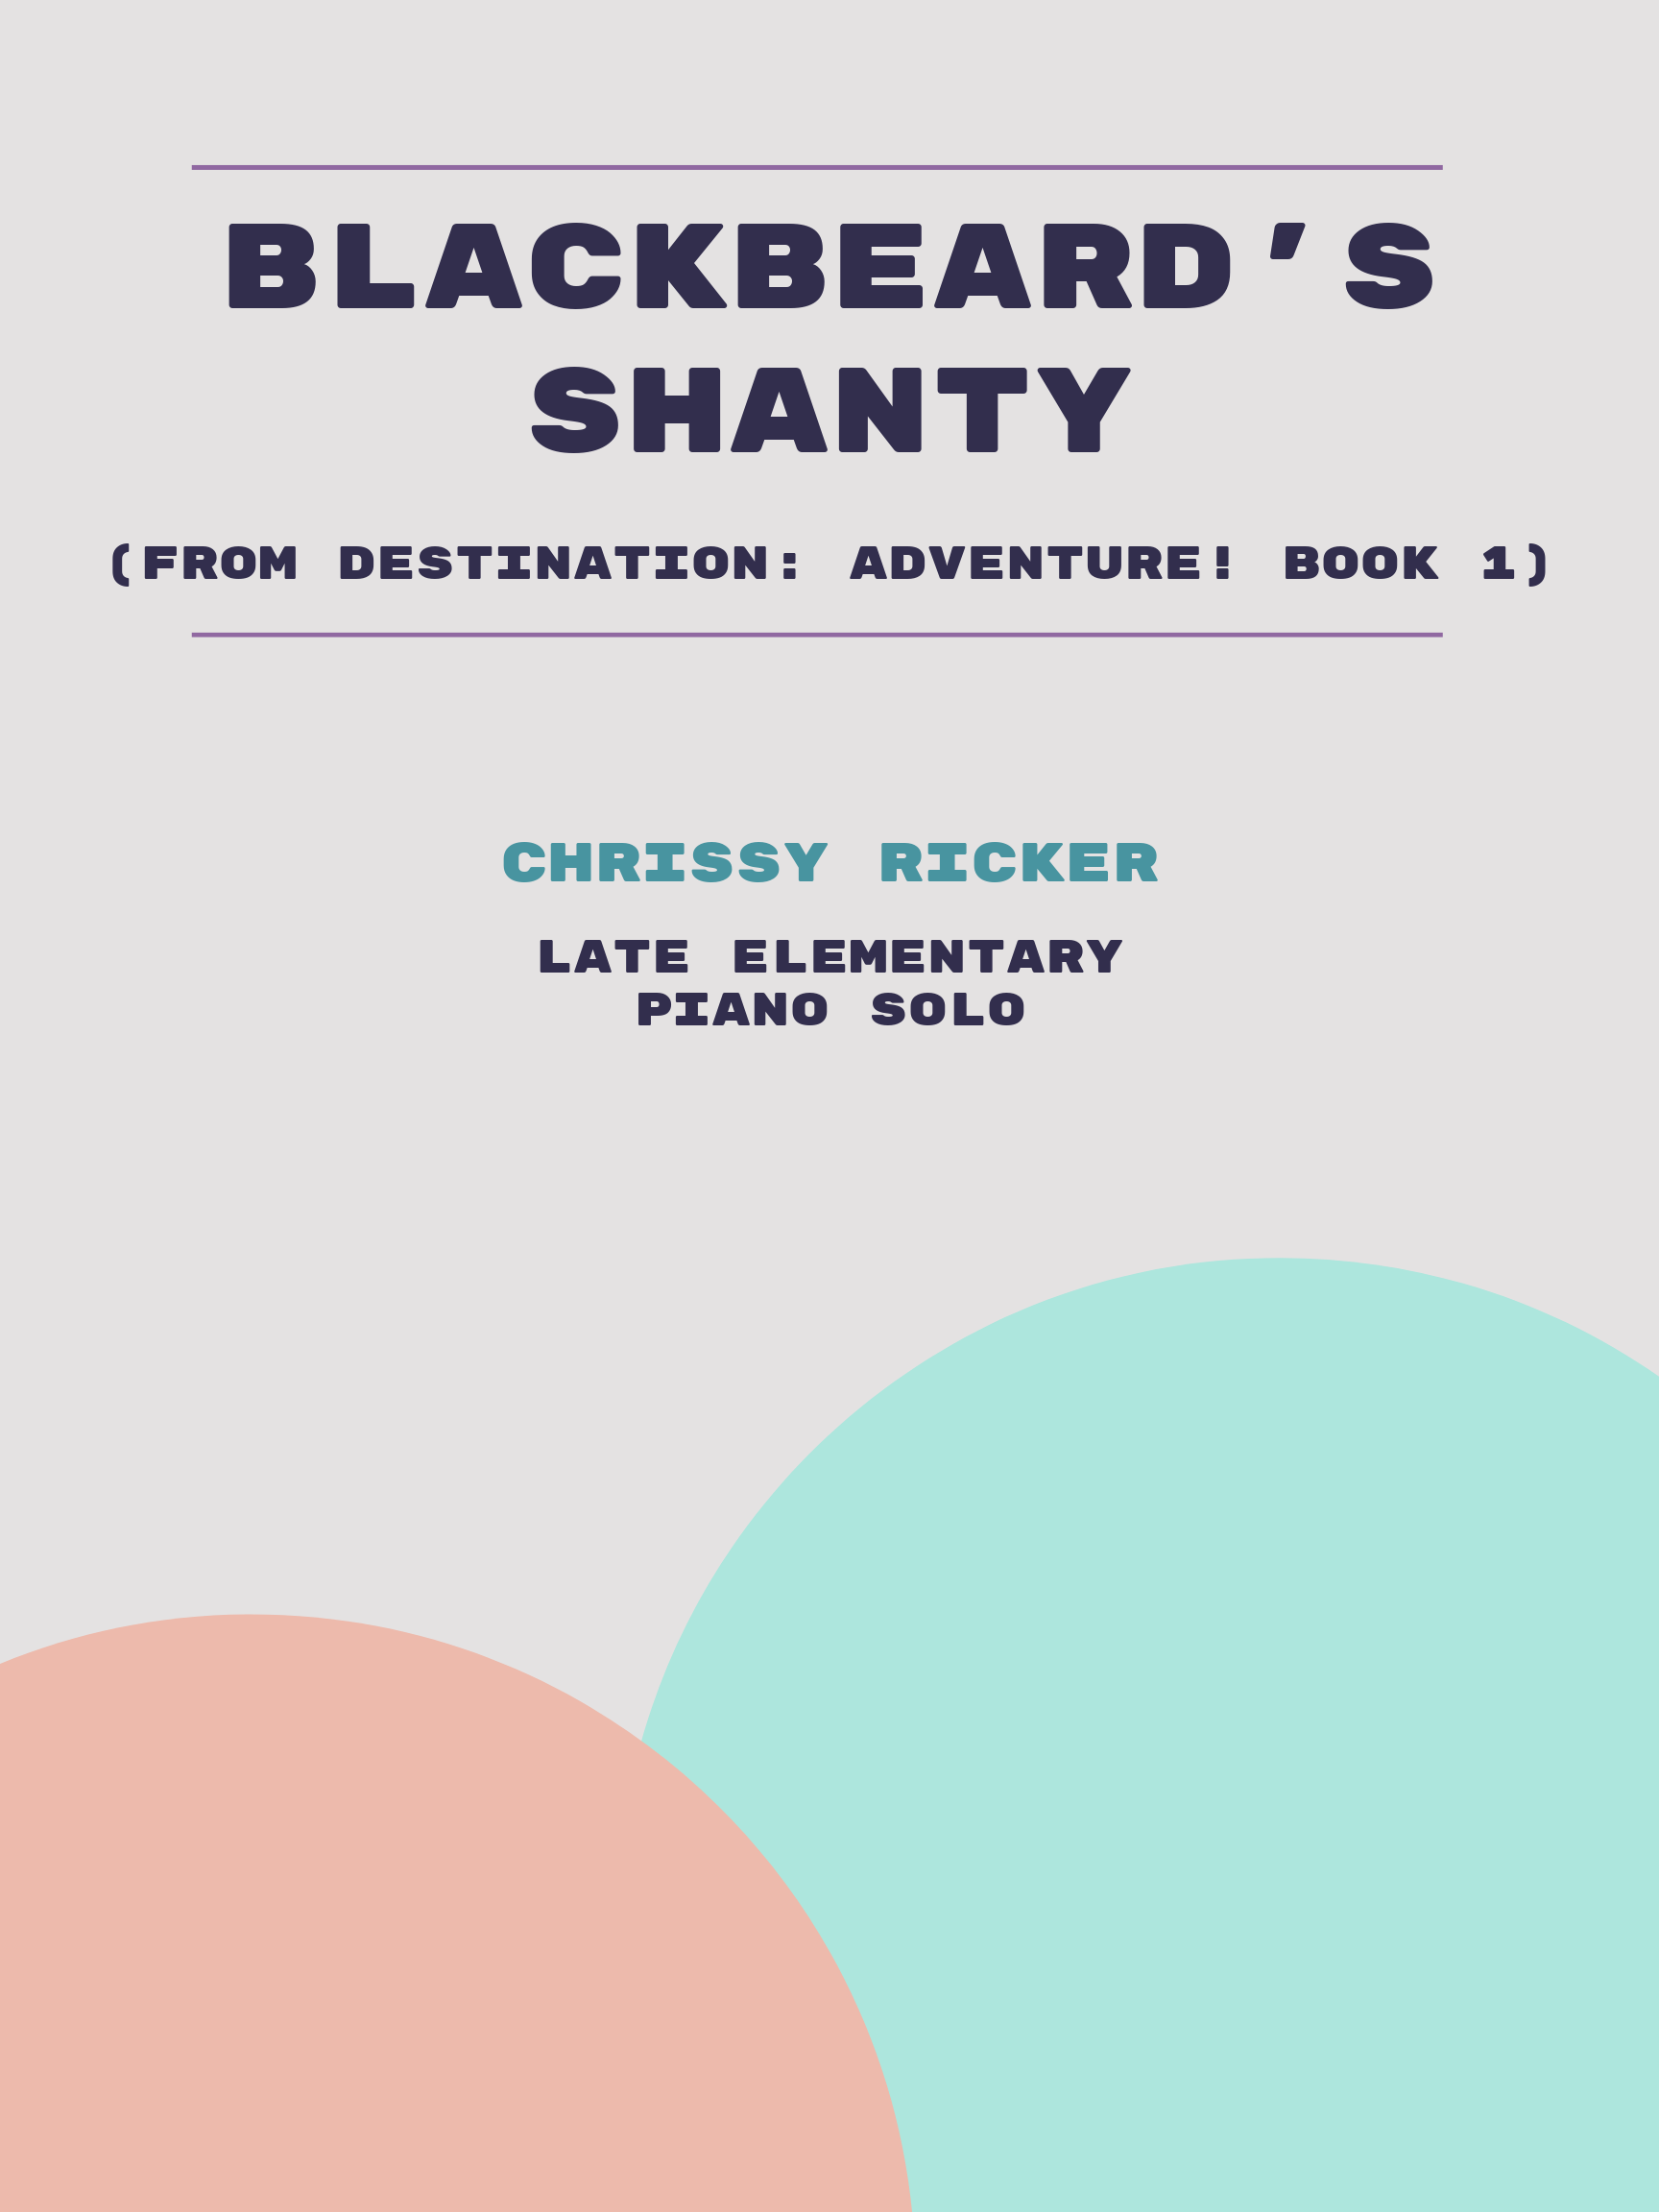 Blackbeard's Shanty by Chrissy Ricker